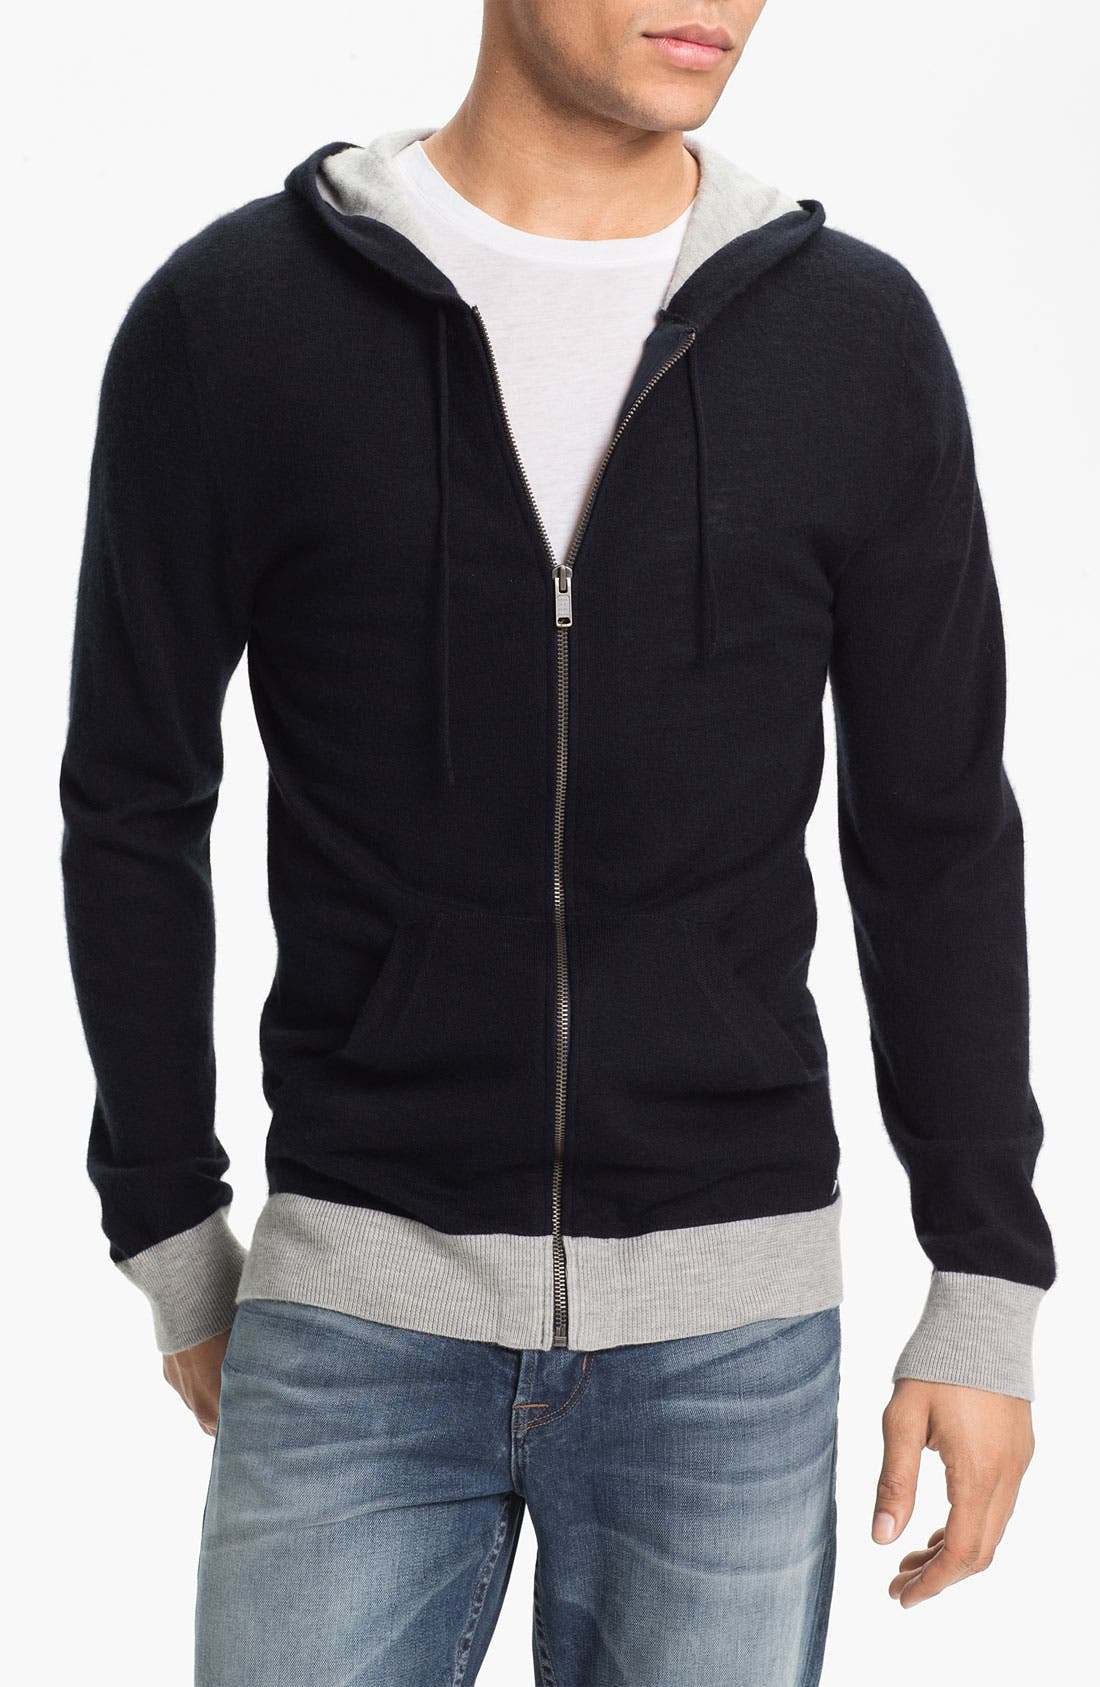 Main Image - MARC BY MARC JACOBS 'Kilmer' Cashmere Knit Hoodie